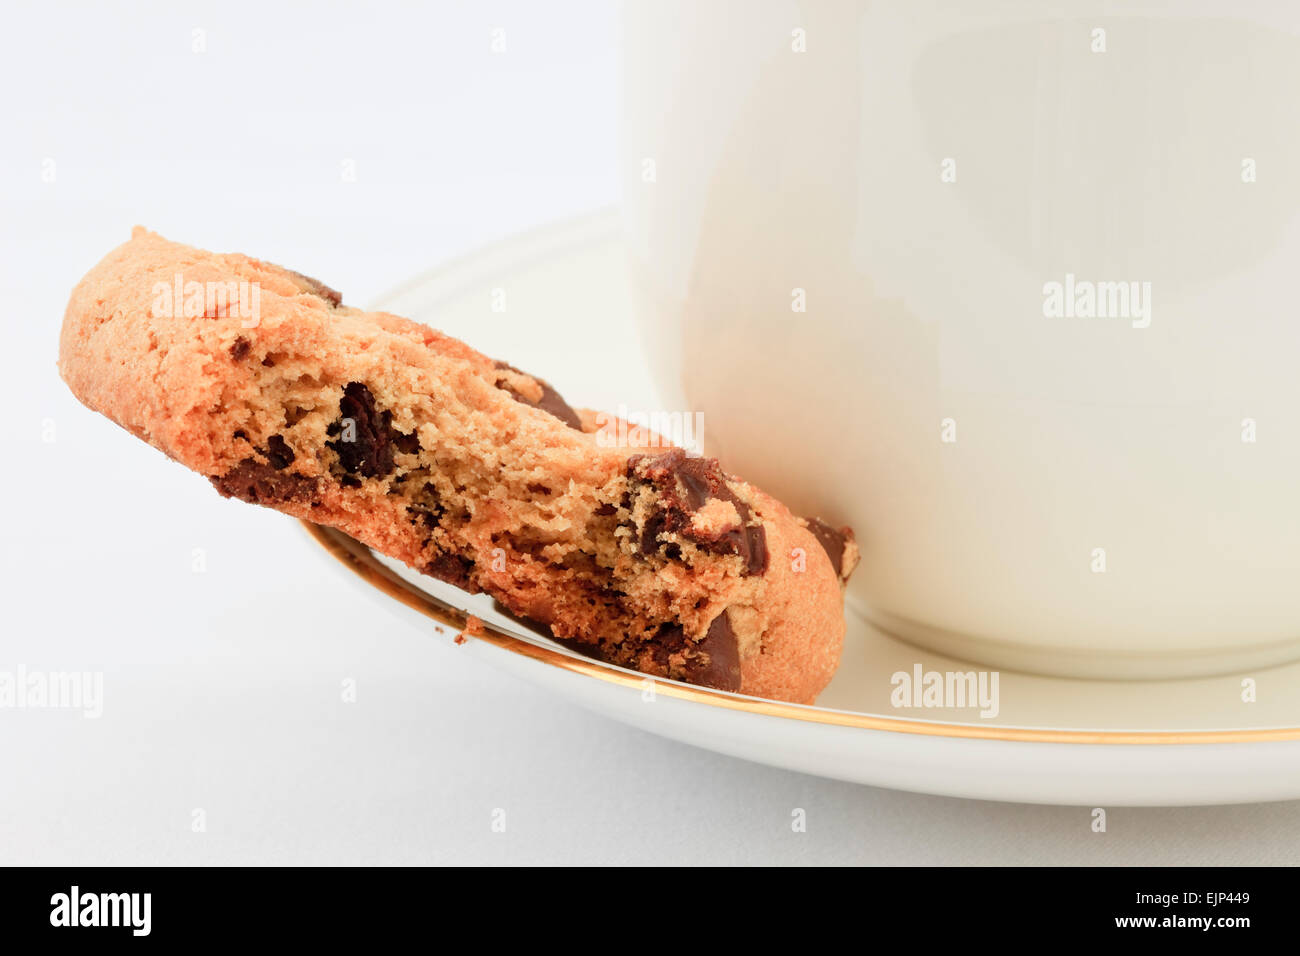 Chocolate chip biscuit with a bite taken out on the saucer with a cup of English tea. England, UK, Britain - Stock Image